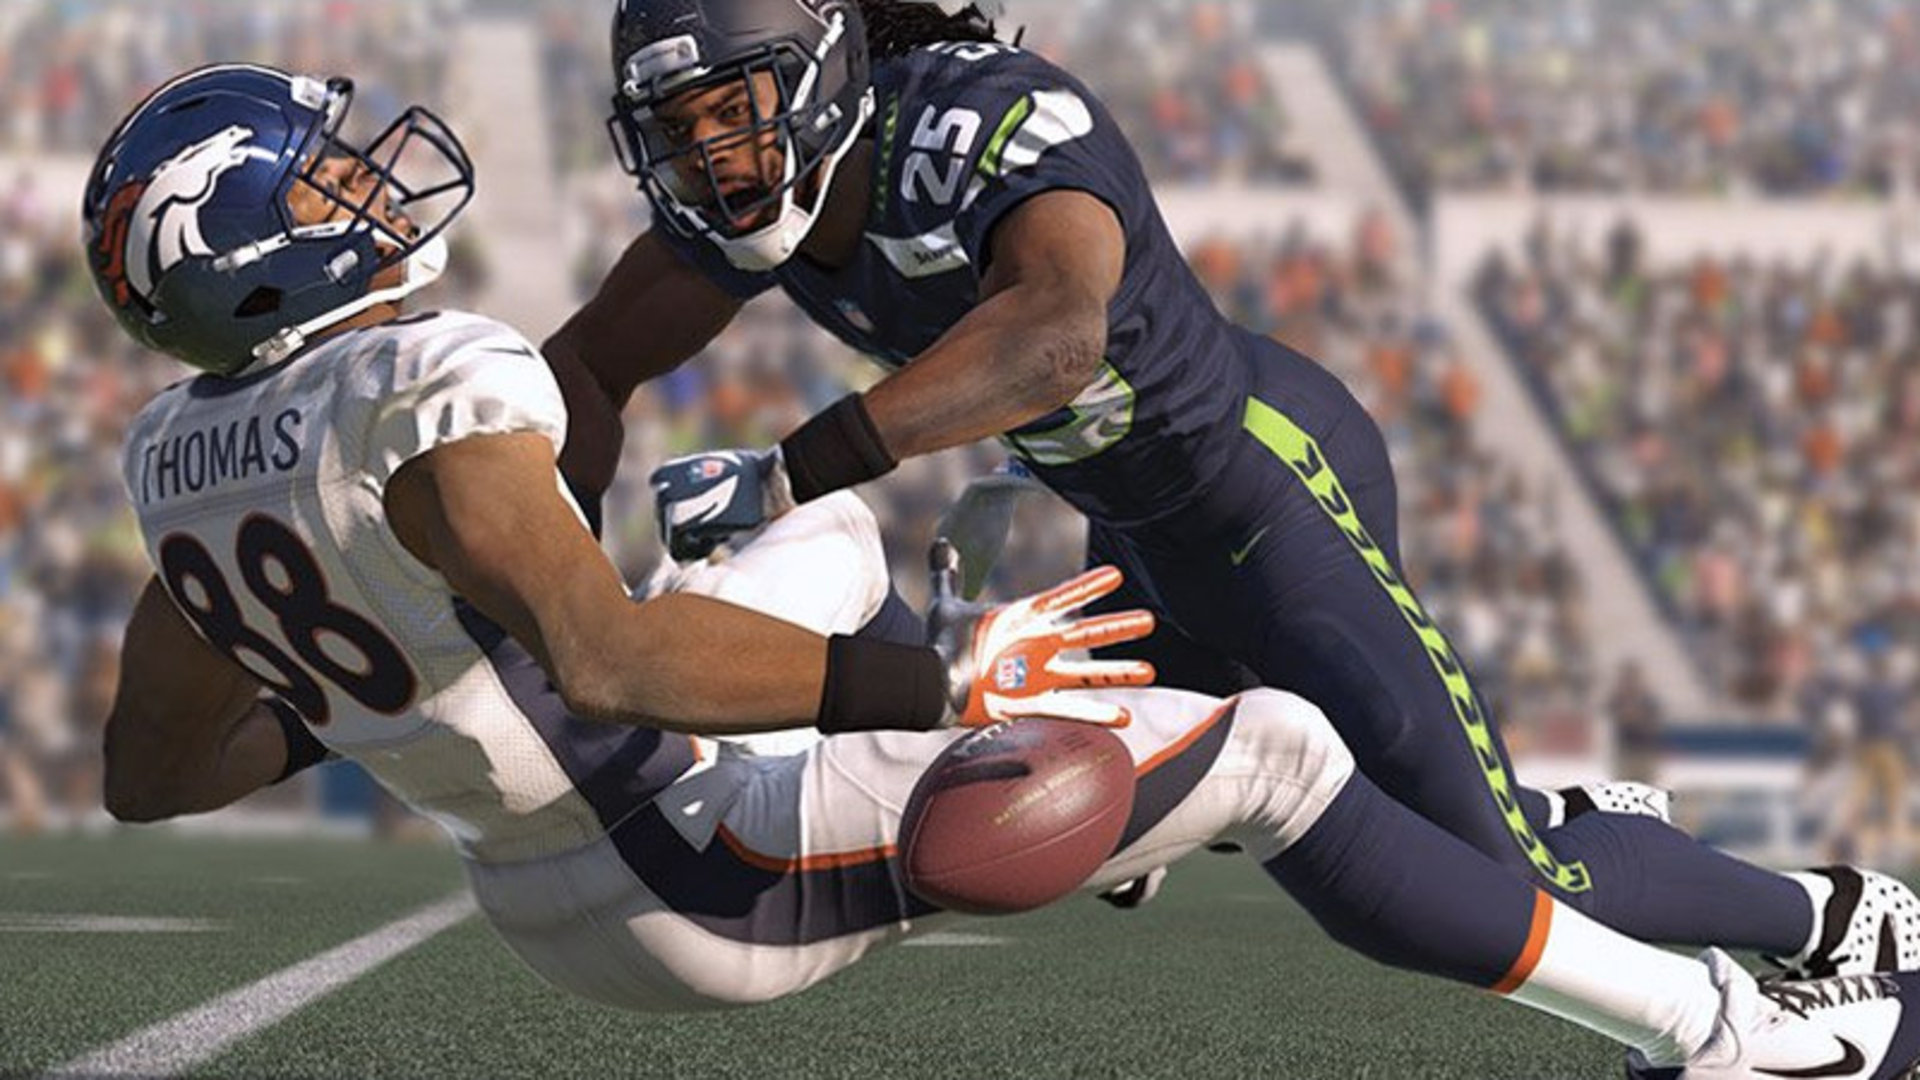 Madden NFL 15 cover to feature Seattle Seahawks Richard Sherman 1920x1080